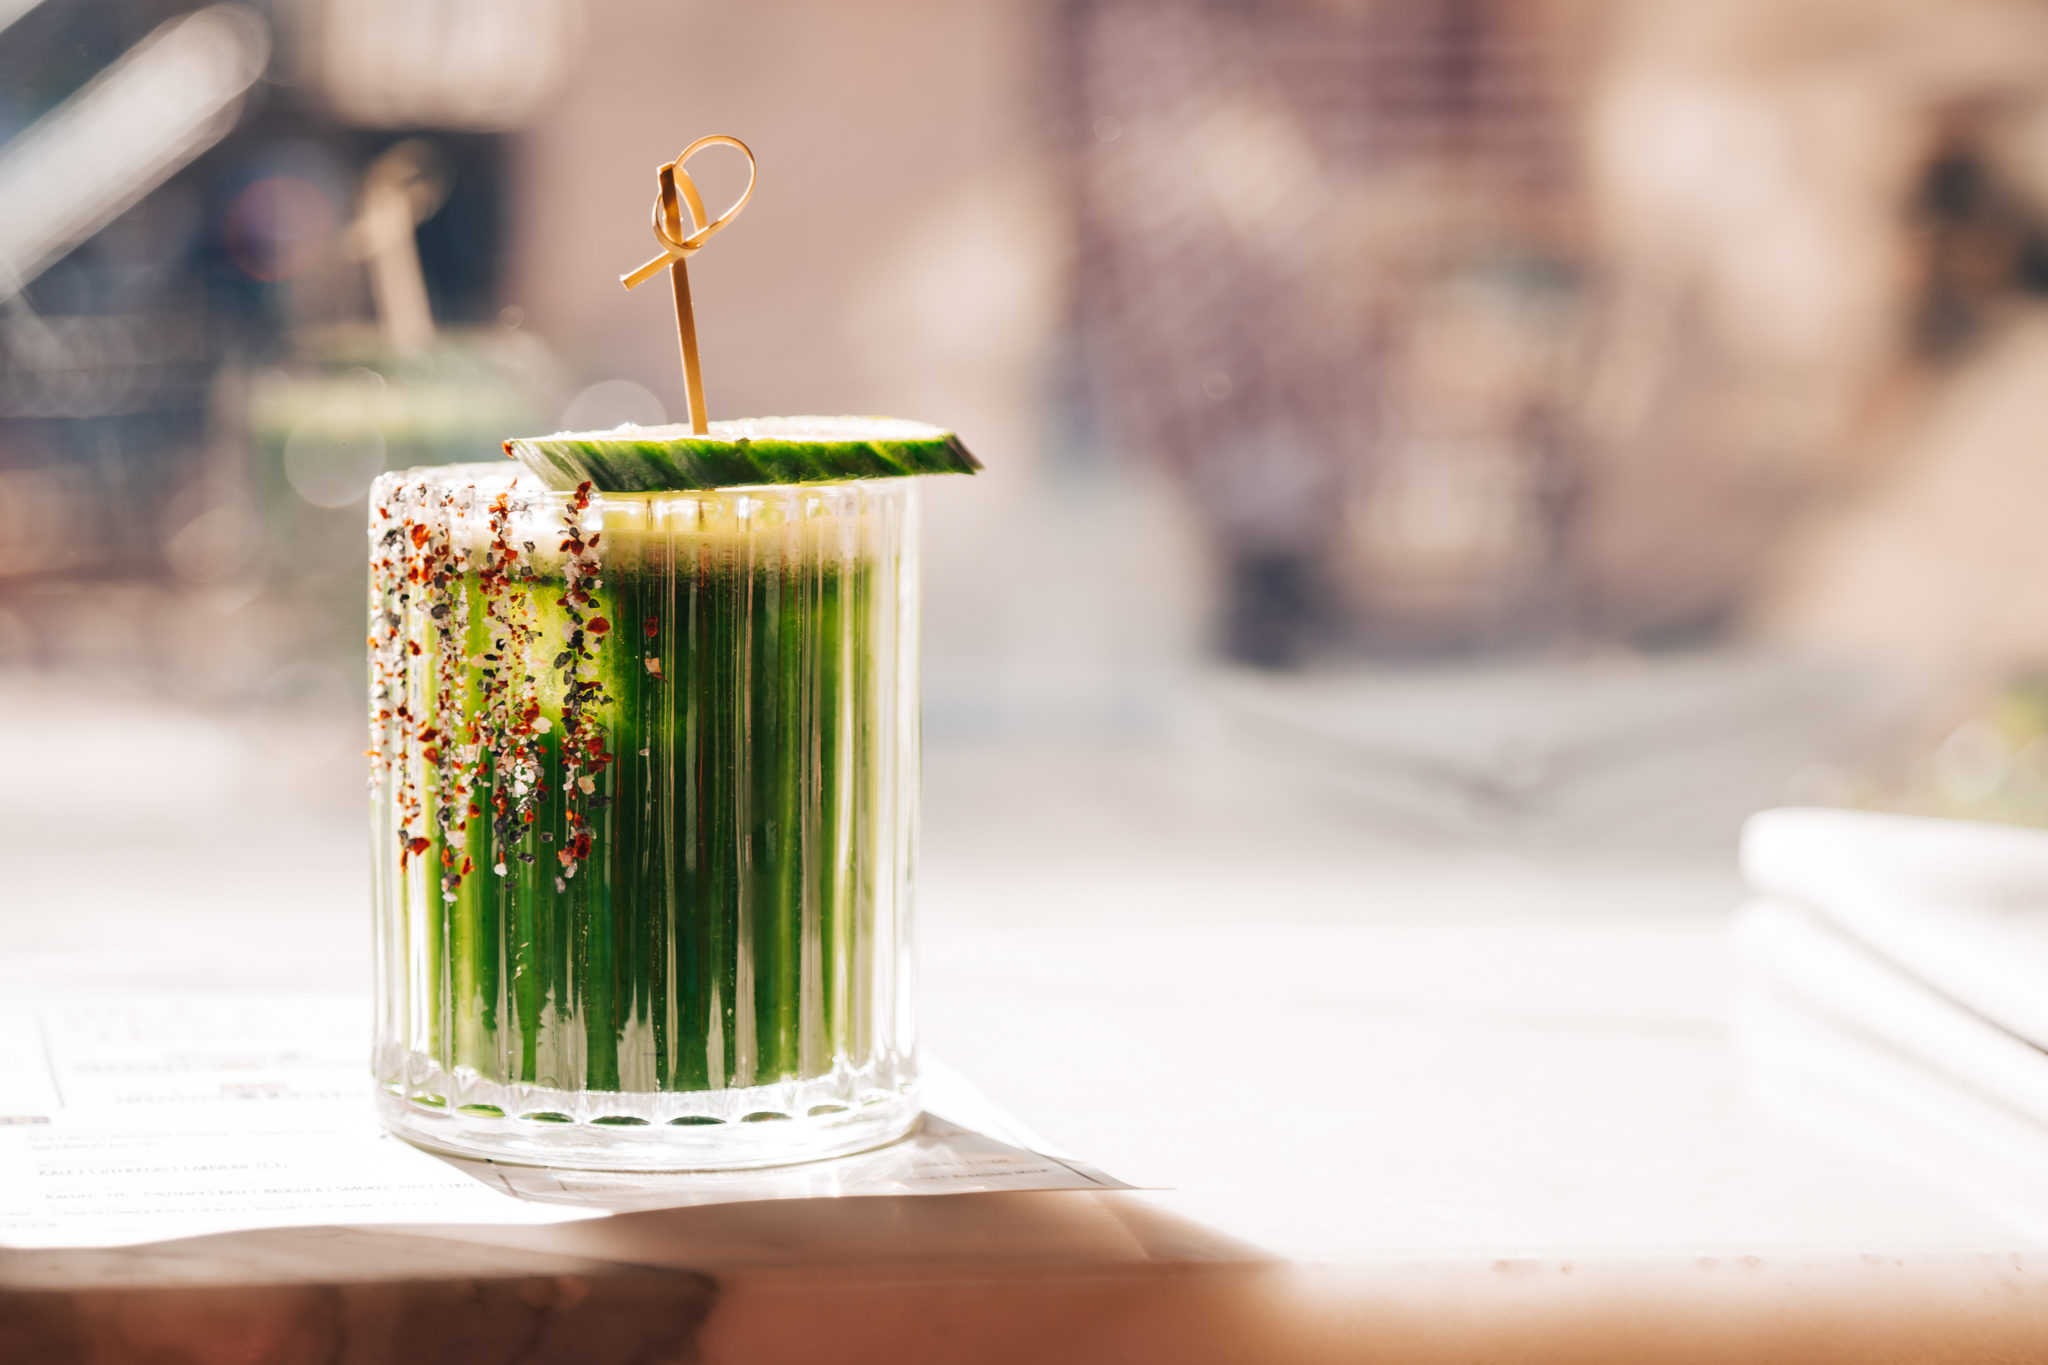 Too Good For You - Tequila/ Agave/ Kale/ Lime/ Cucumber